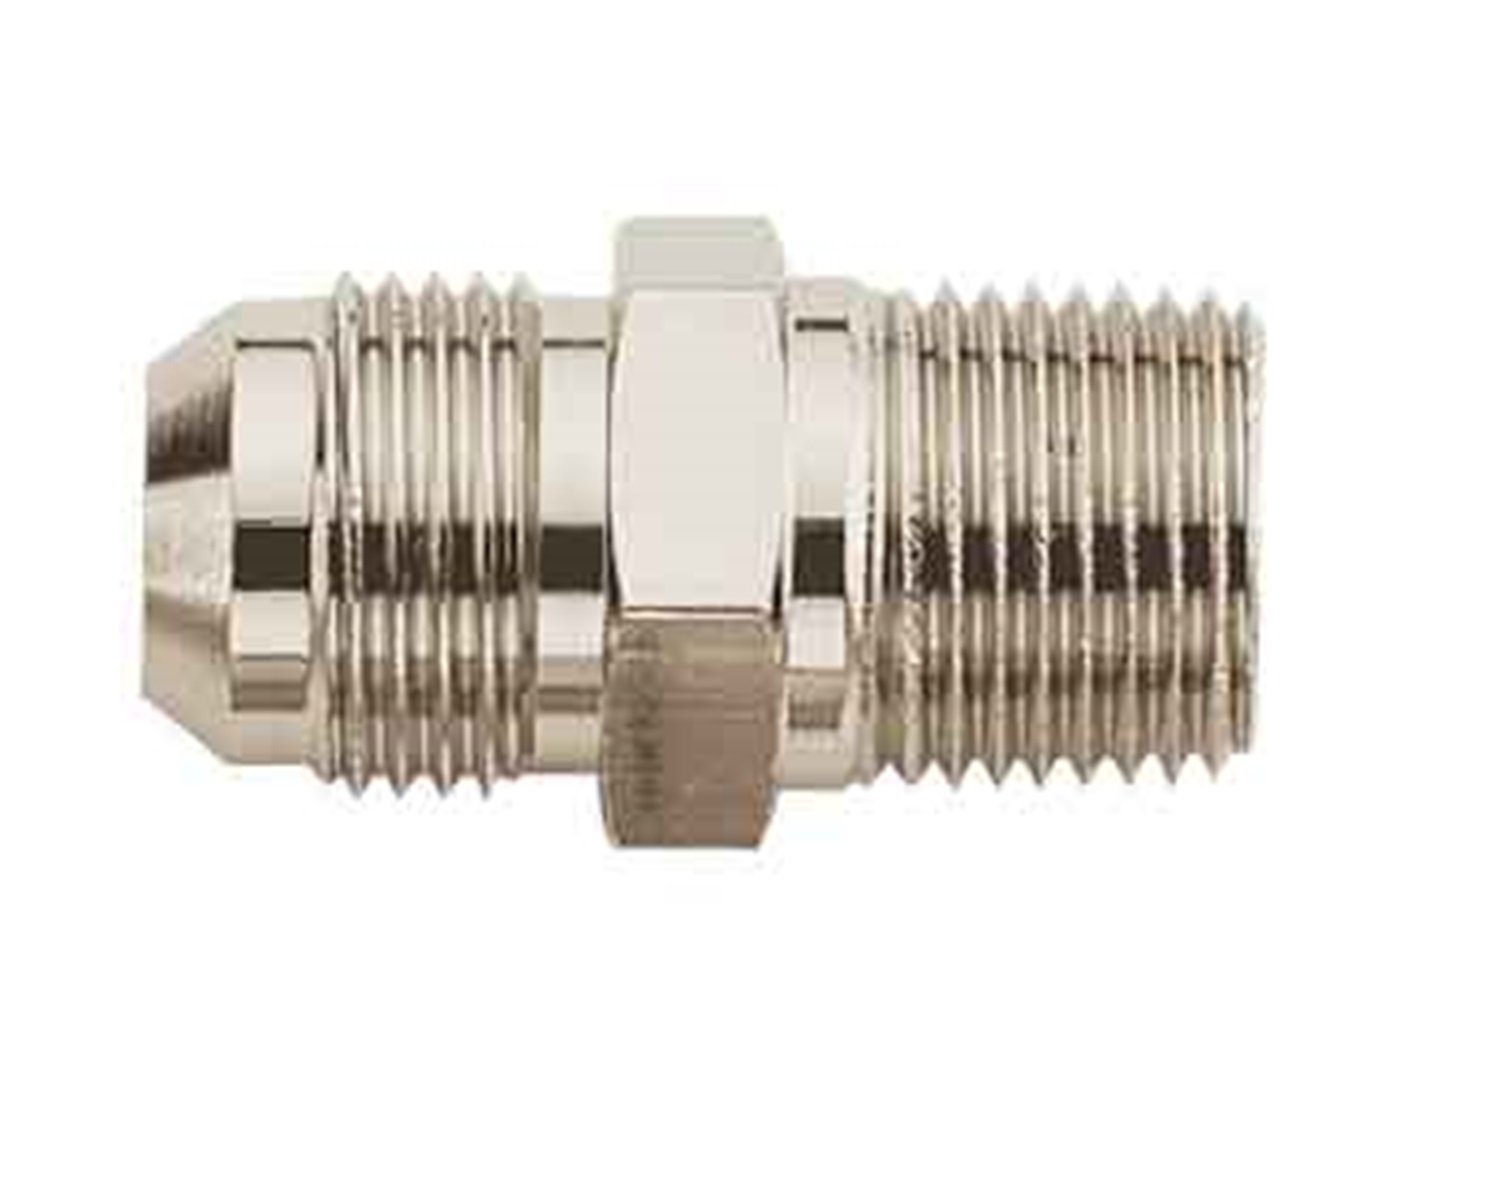 Aeroquip FCE2004 Nickel-Plated Aluminum -6AN Male to 1/4' NPT Male Straight Adapter